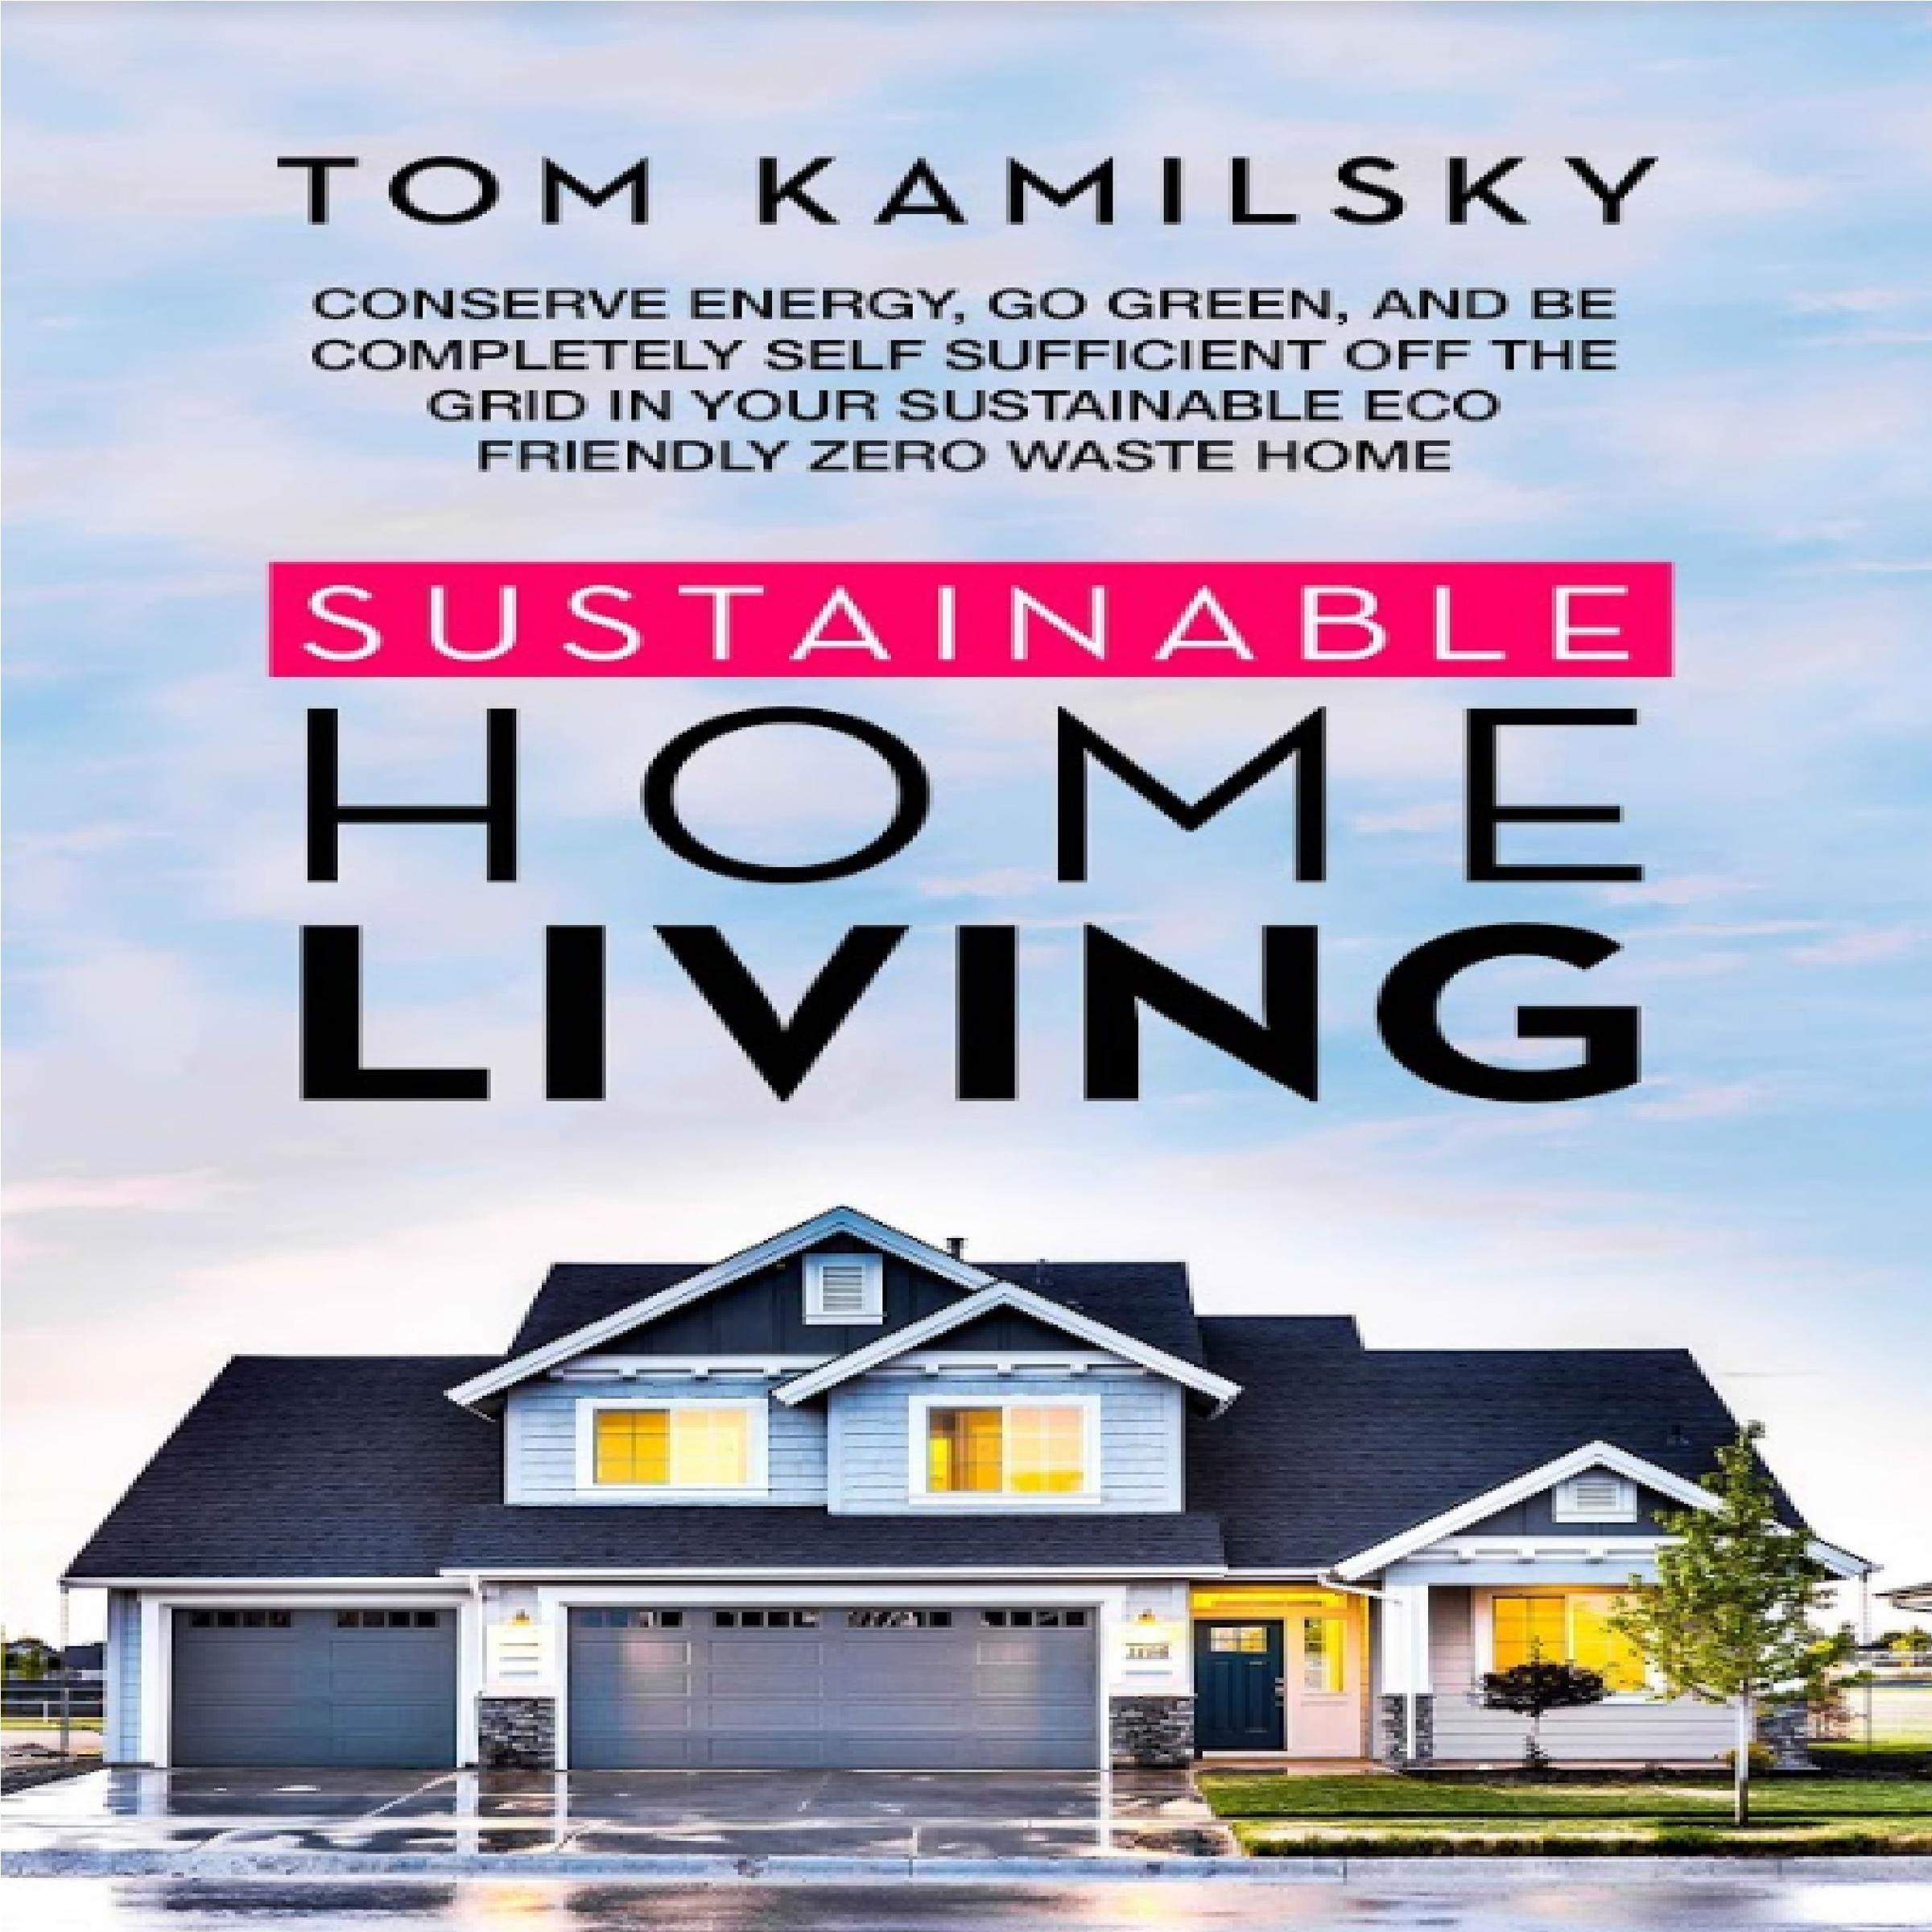 Sustainable Home Living  Conserve Energy Go Green And Be Completely Self Sufficient Off The Grid In Your Sustainable Eco Friendly Zero Waste Home